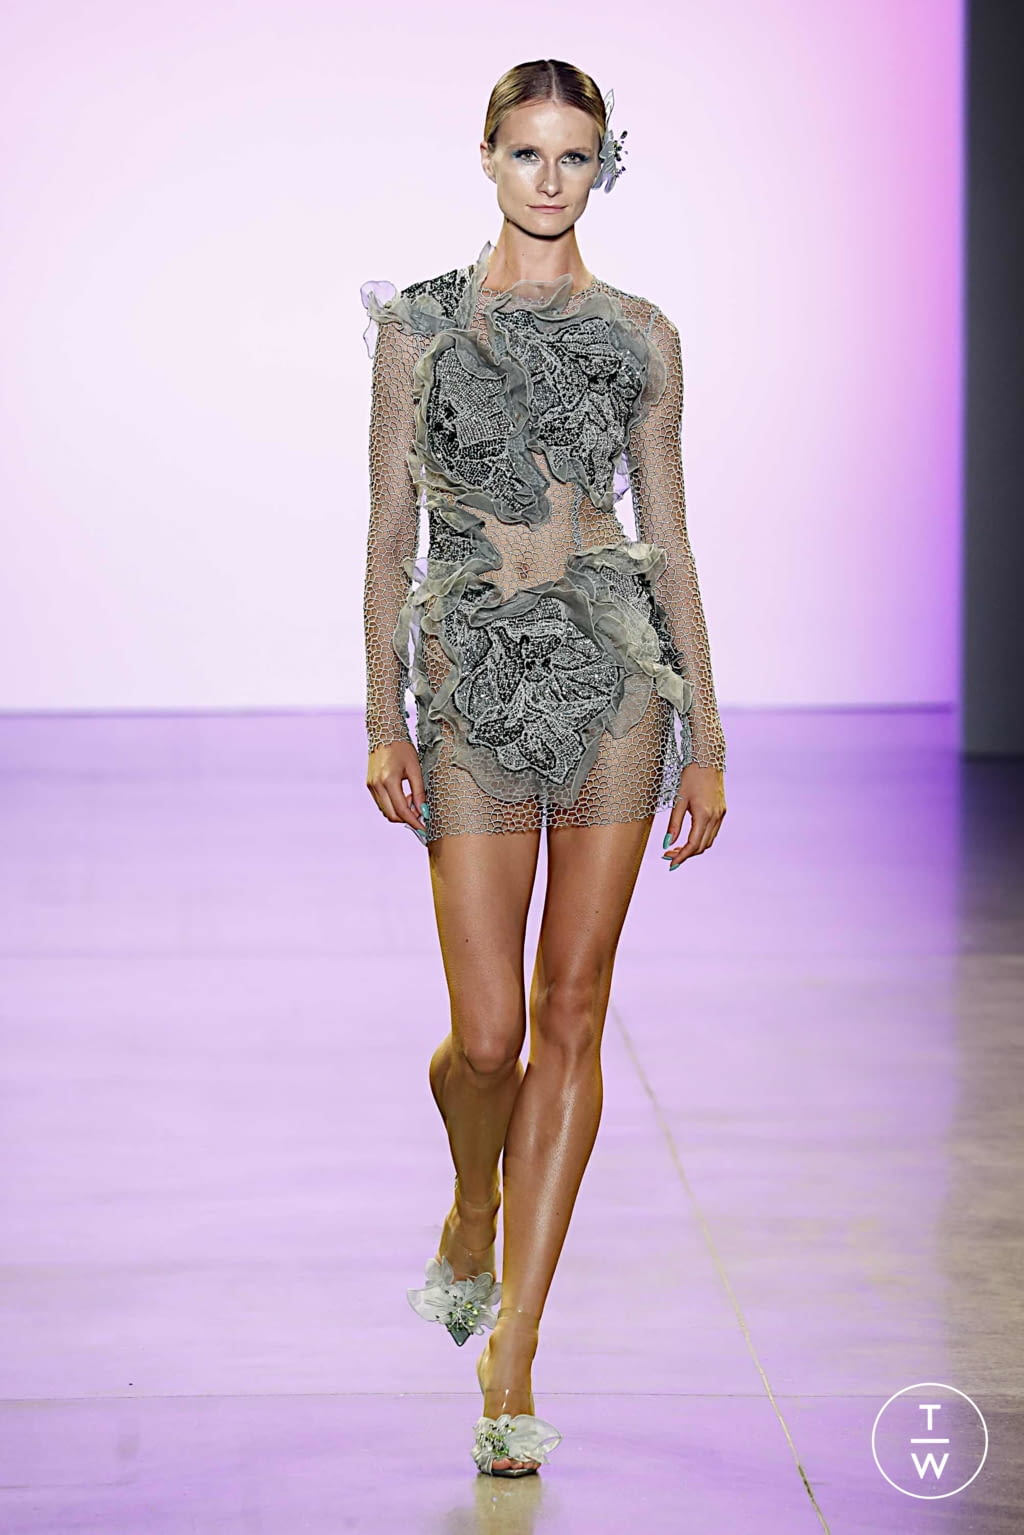 Fashion Week New York Spring/Summer 2020 look 19 from the Affair collection 女装